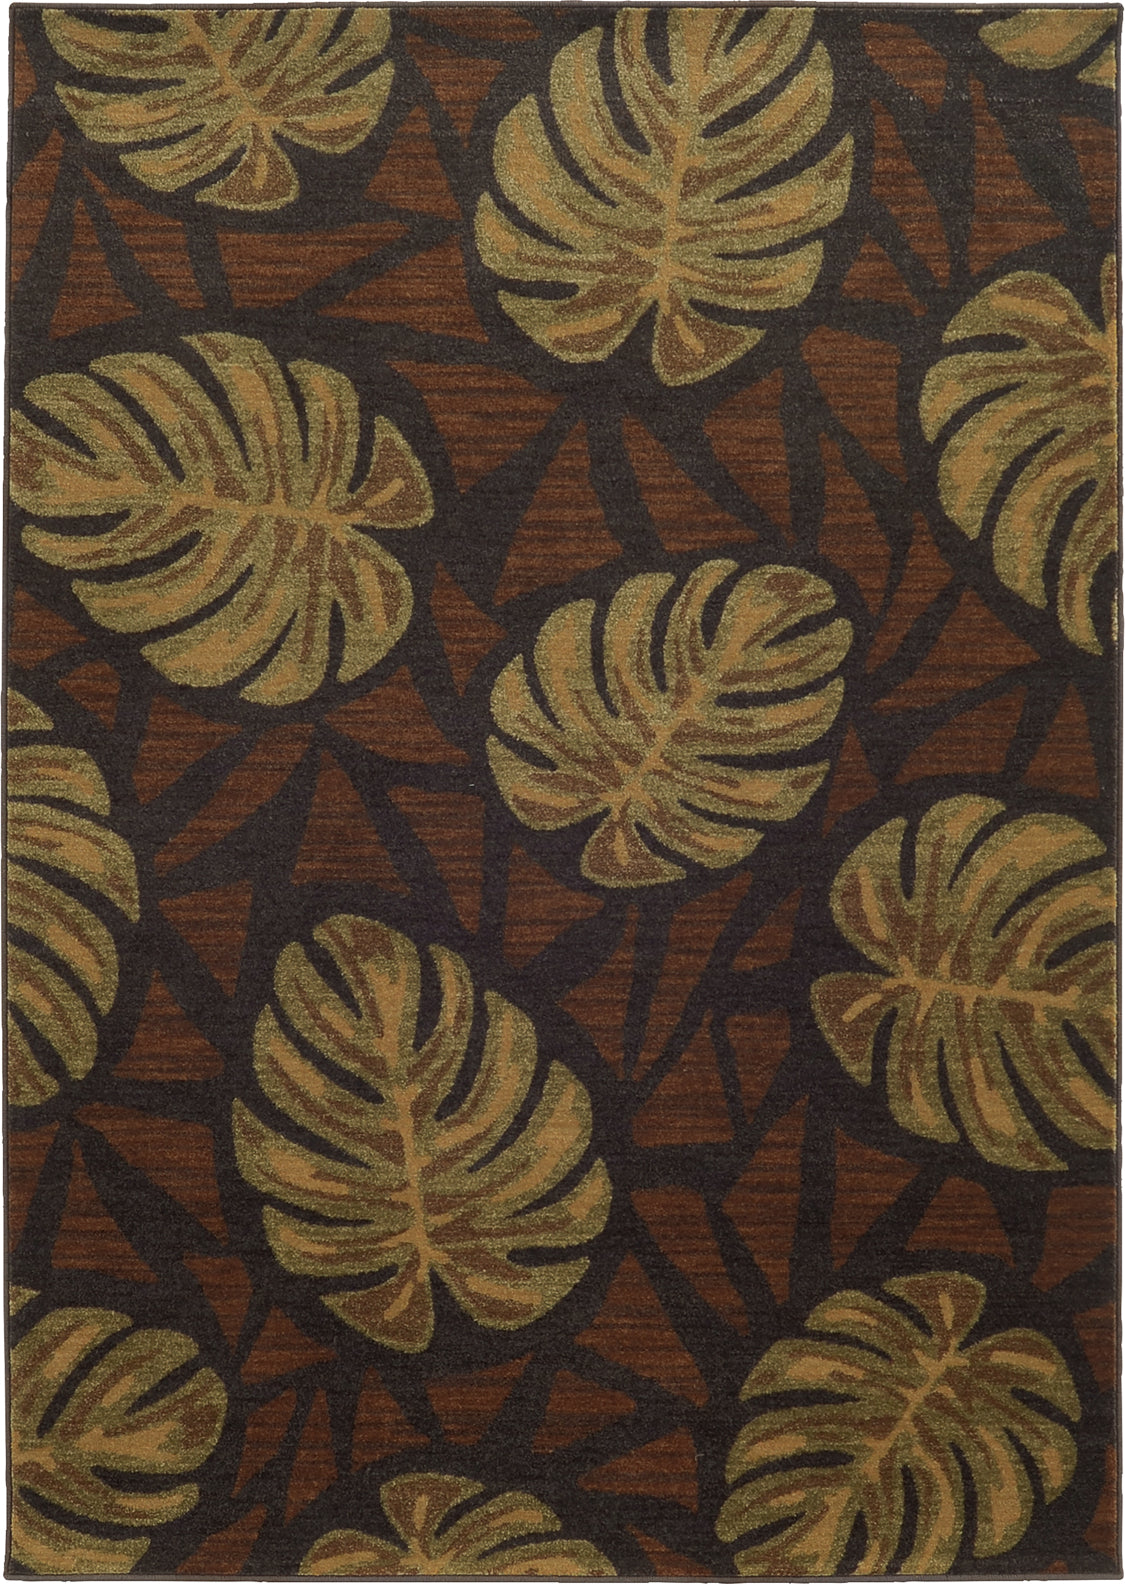 Tommy Bahama Voyage 5994N Charcoal Area Rug main image